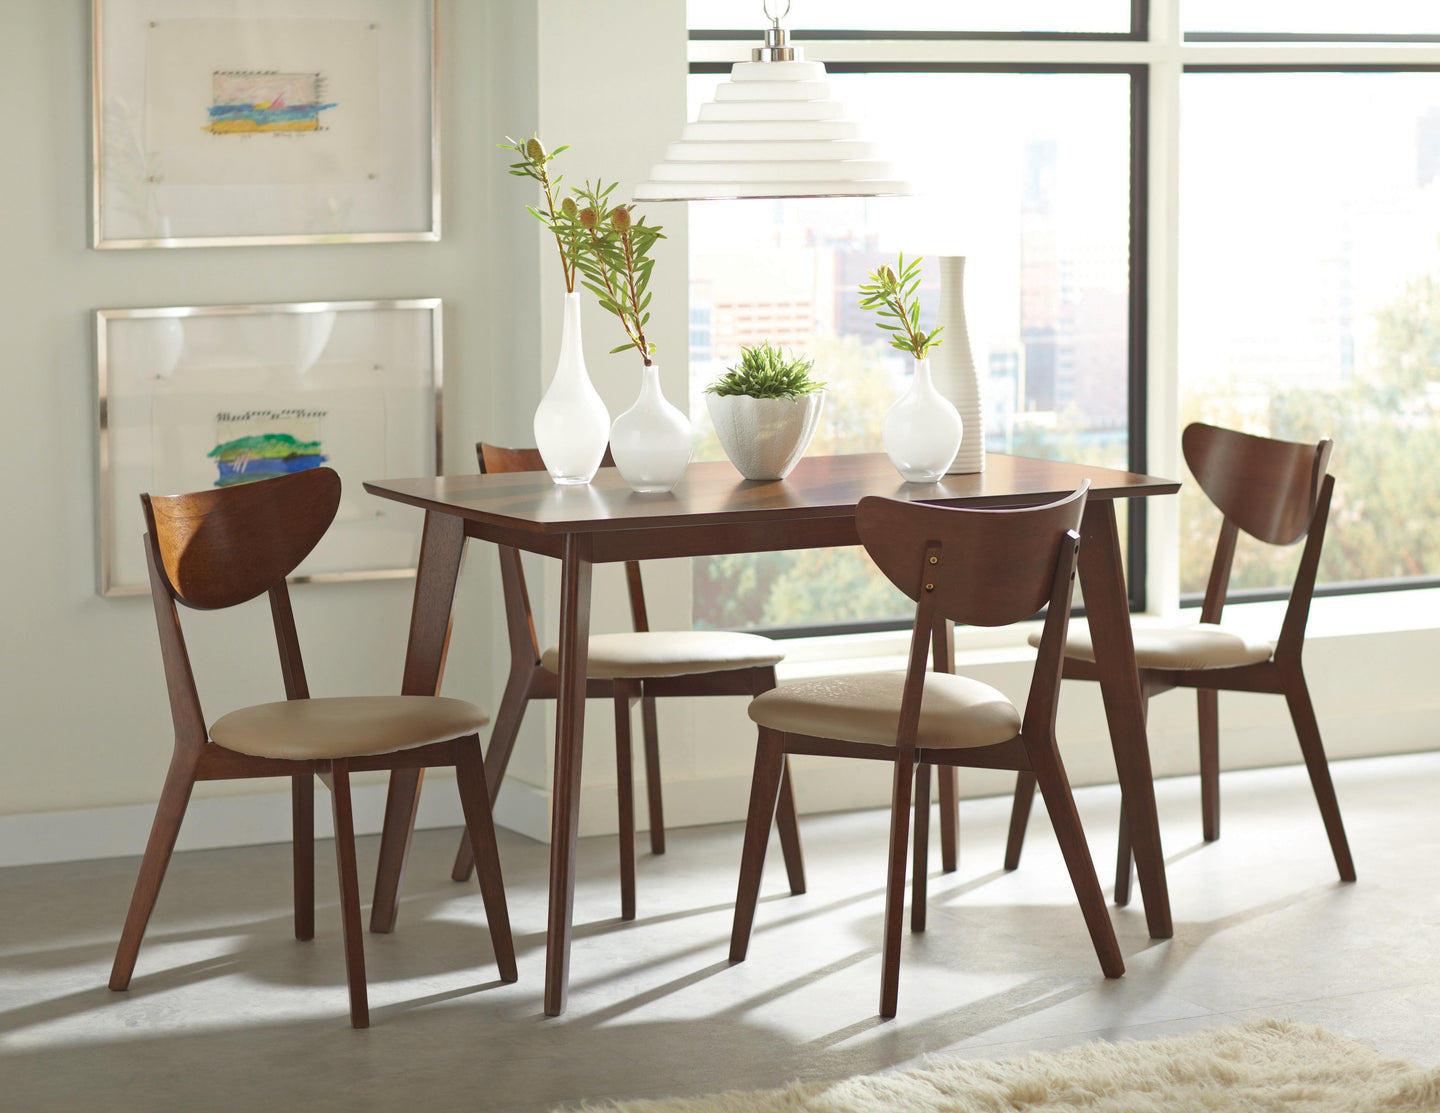 Coaster Kersey 5 Piece Dining Table Set in Chestnut Finish